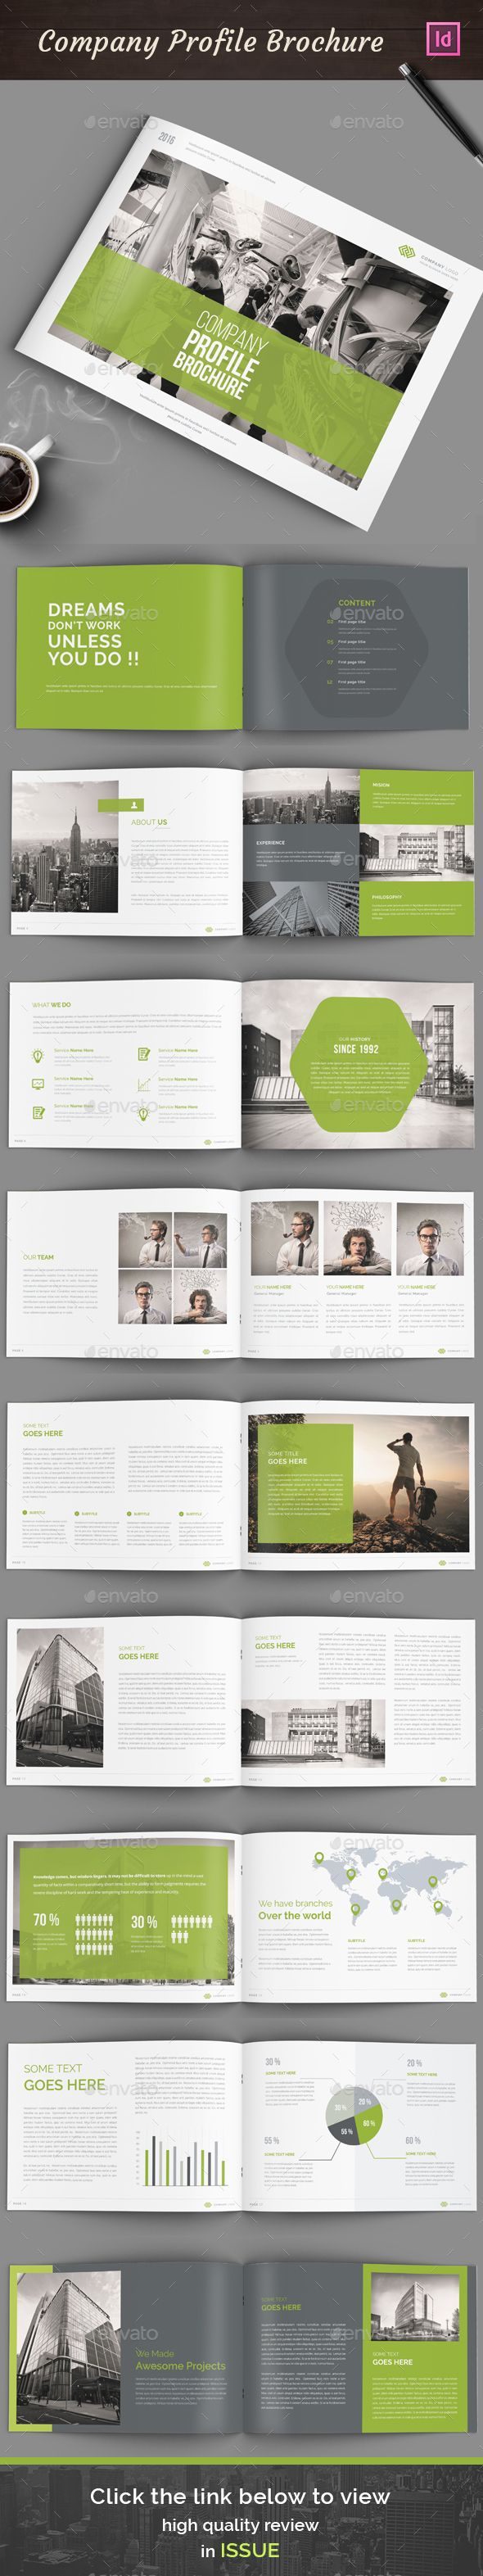 Annual Report Brochure 05 | Annual reports, Brochure template and ...